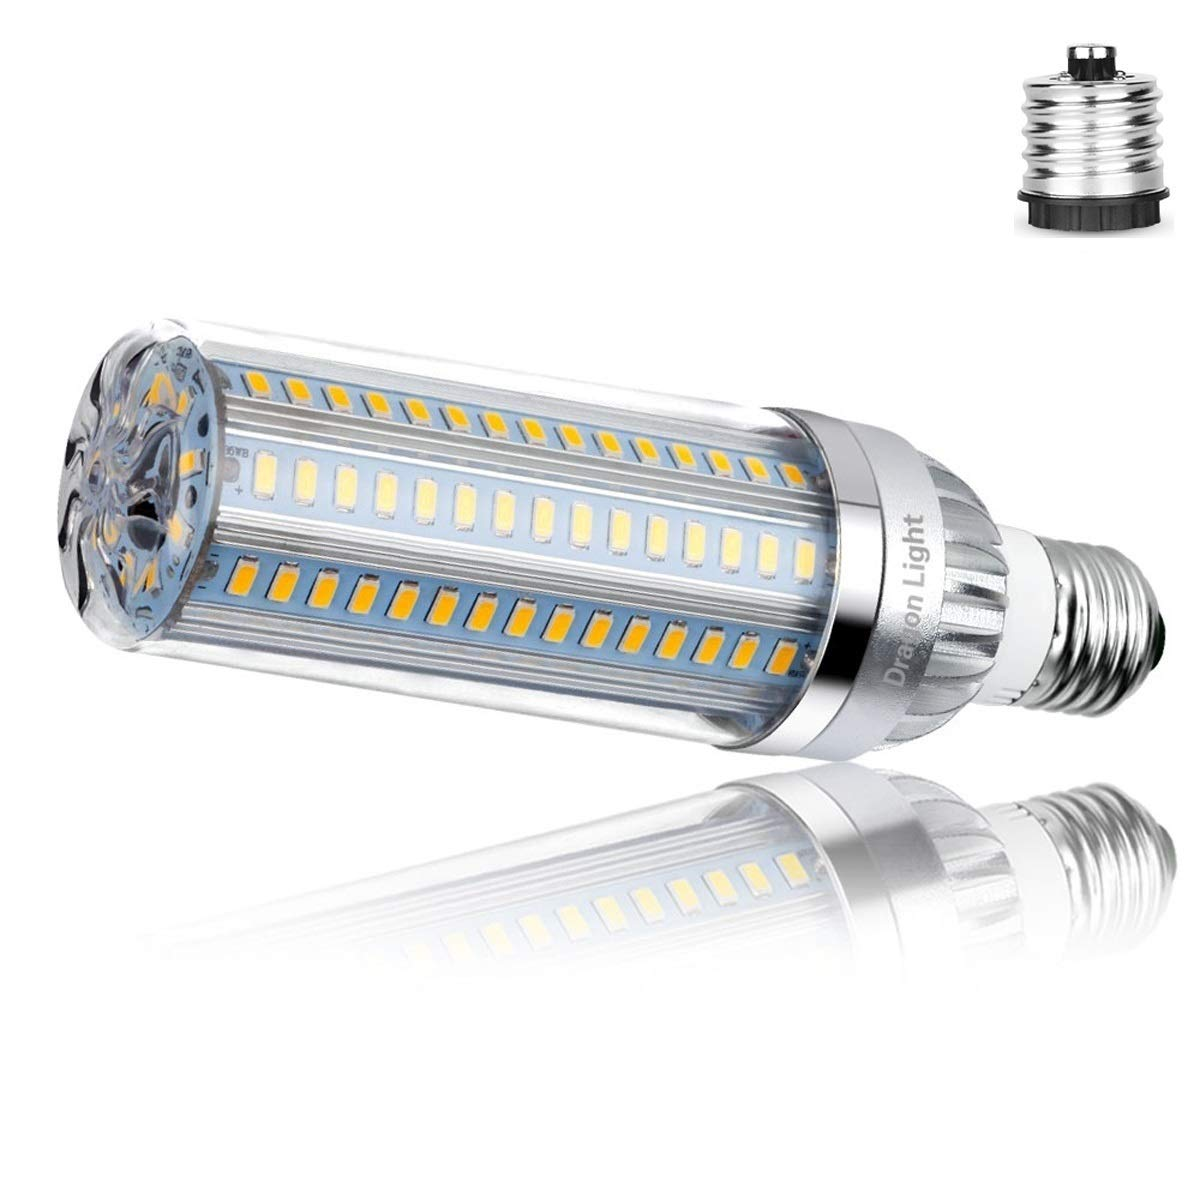 35W Super Bright Corn LED Light Bulbs (300 Watt Equivalent) - 3000K Warm White 3850Lumens - E26 with E39 Mogul Base Adapter for Large Area Commercial Ceiling Lights-Porch Warehouse Factory Parking Lot